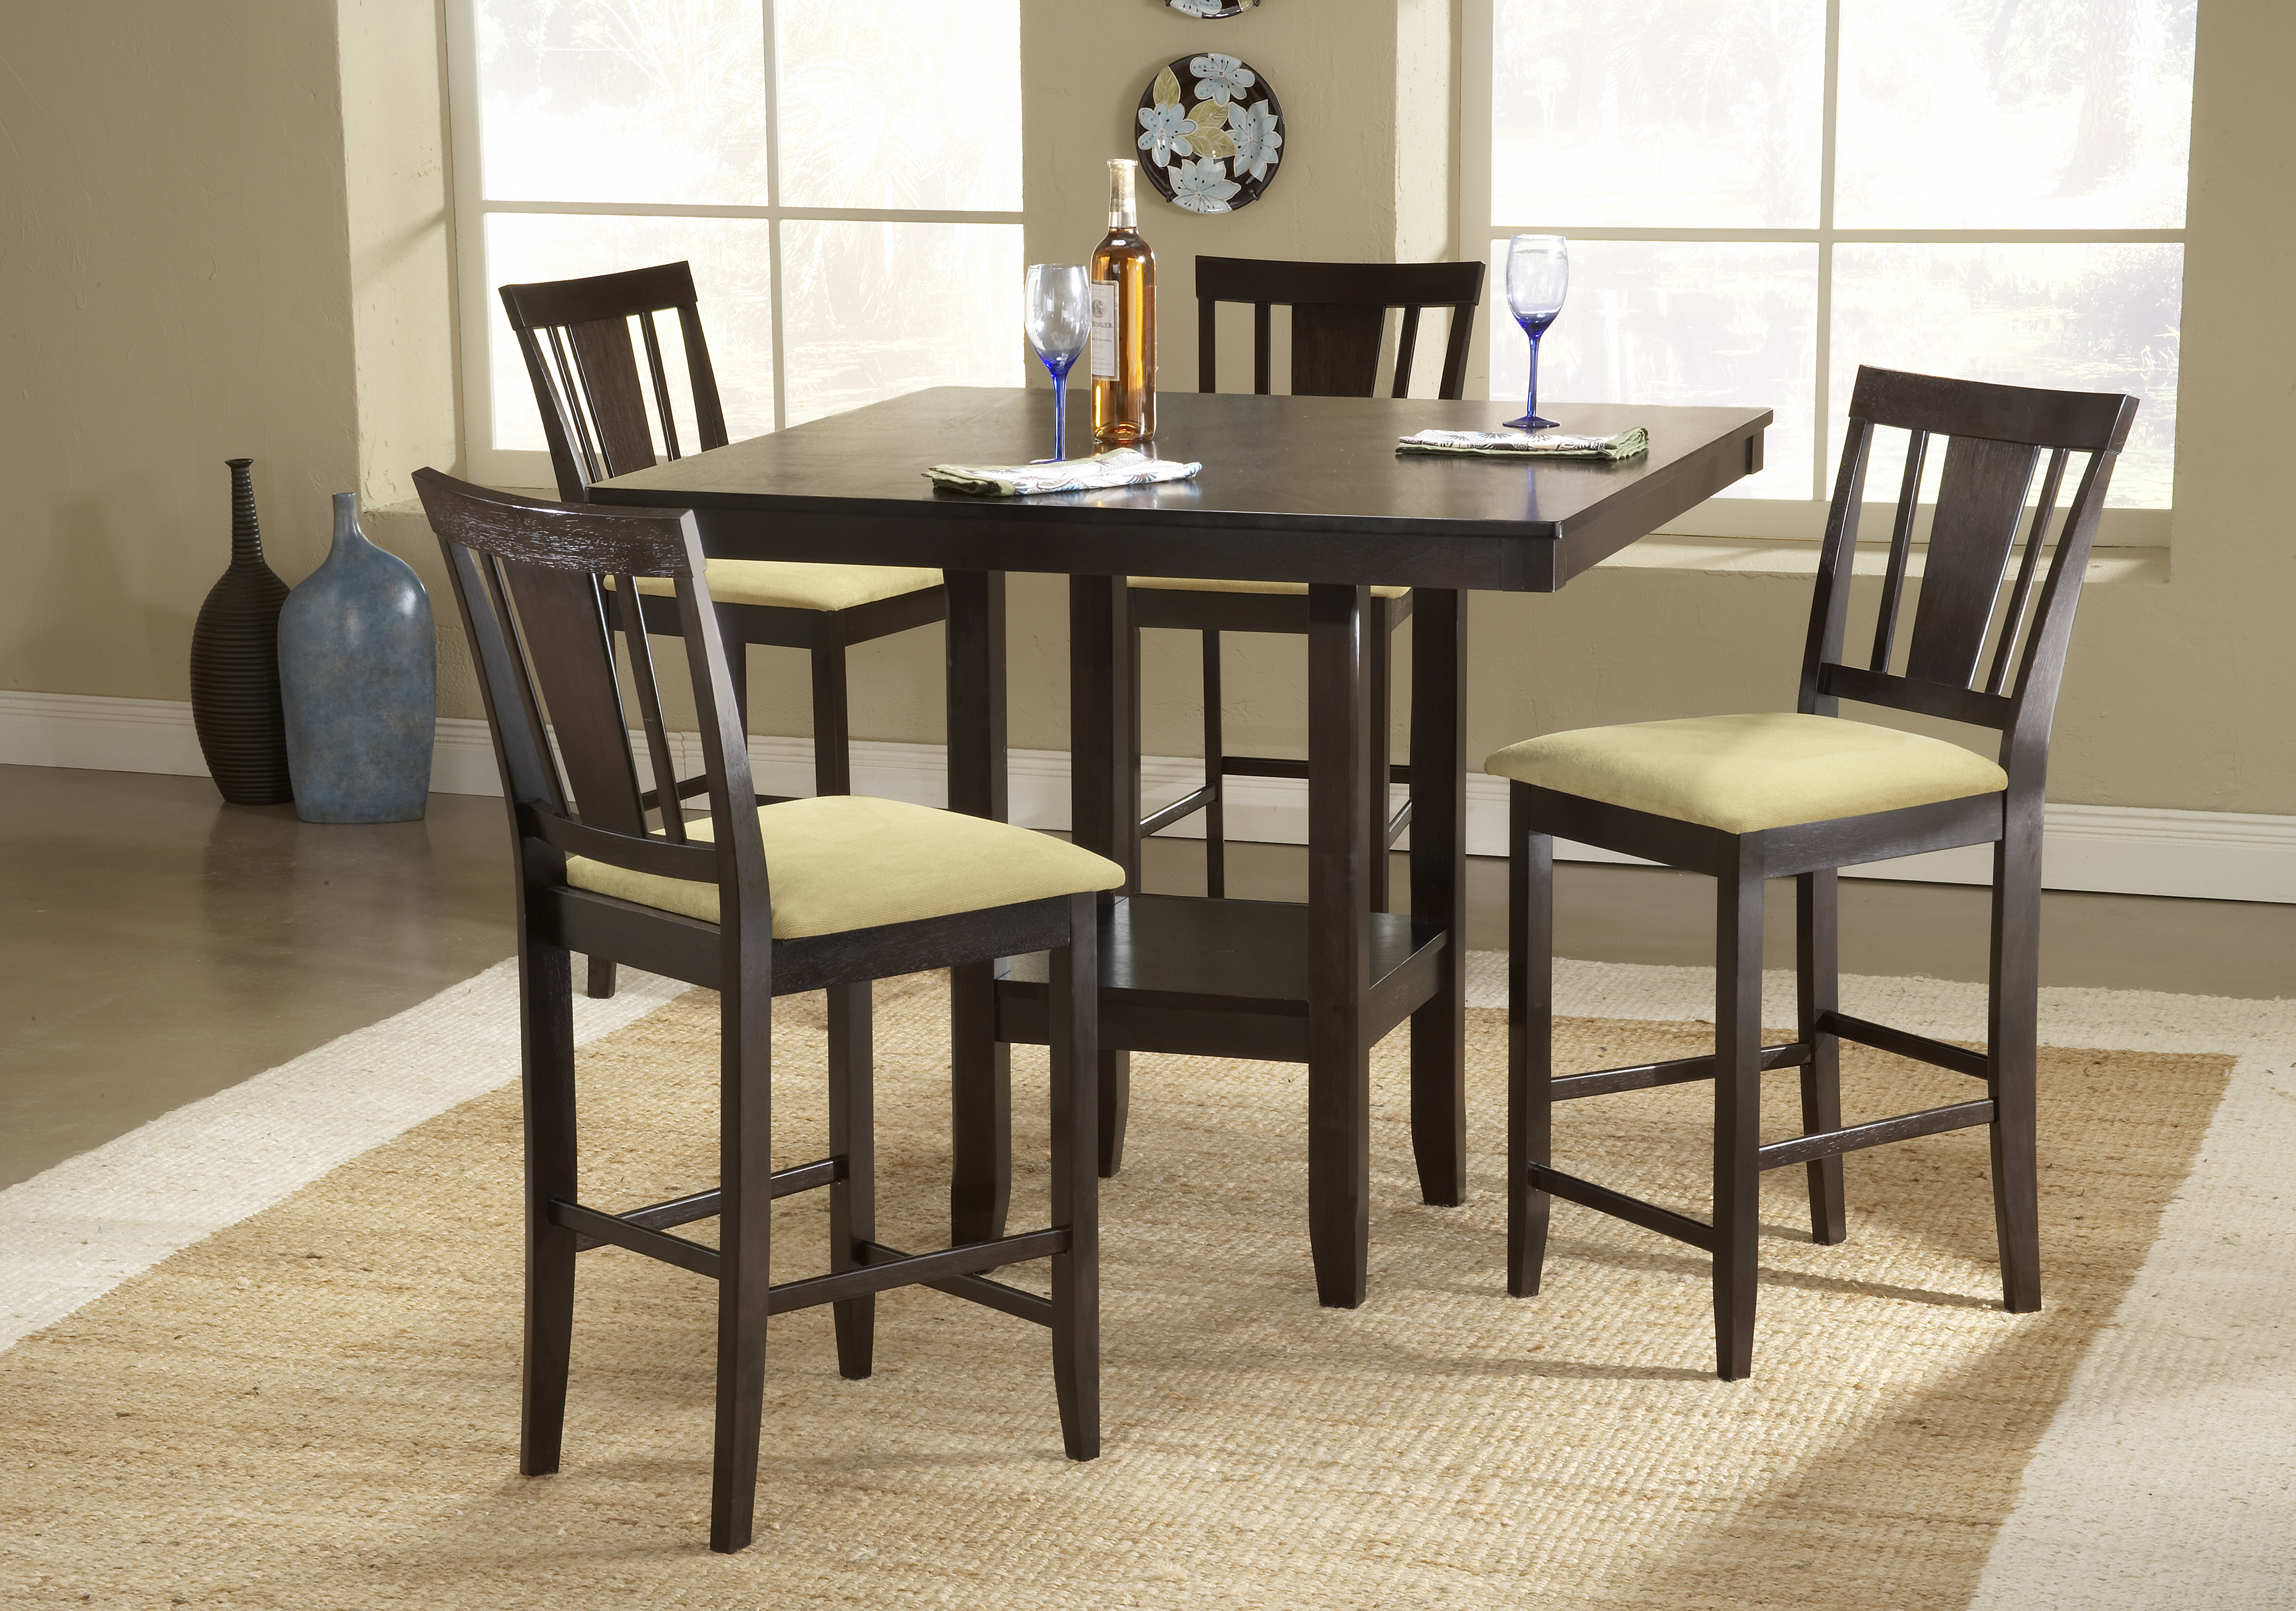 Counter Height Dinette Sets HomesFeed : Counter Height Dinette Set With Wooden Table And Four Chairs Warm Rug Of Dining Room from homesfeed.com size 3450 x 2420 jpeg 5975kB